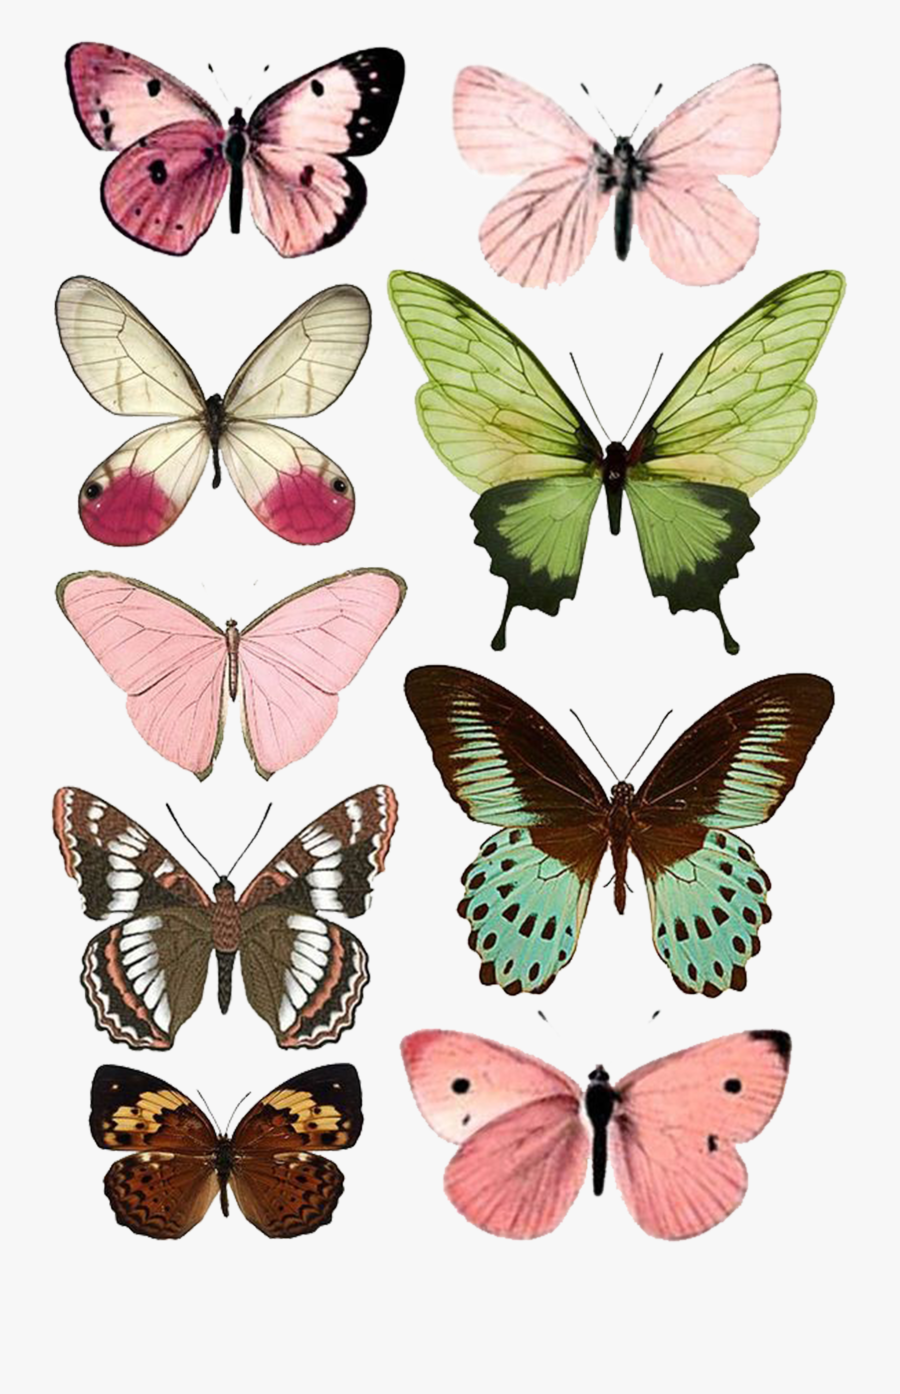 Butterfly Moth Insect Paper Printing Free Download - Free Printable Butterflies, Transparent Clipart